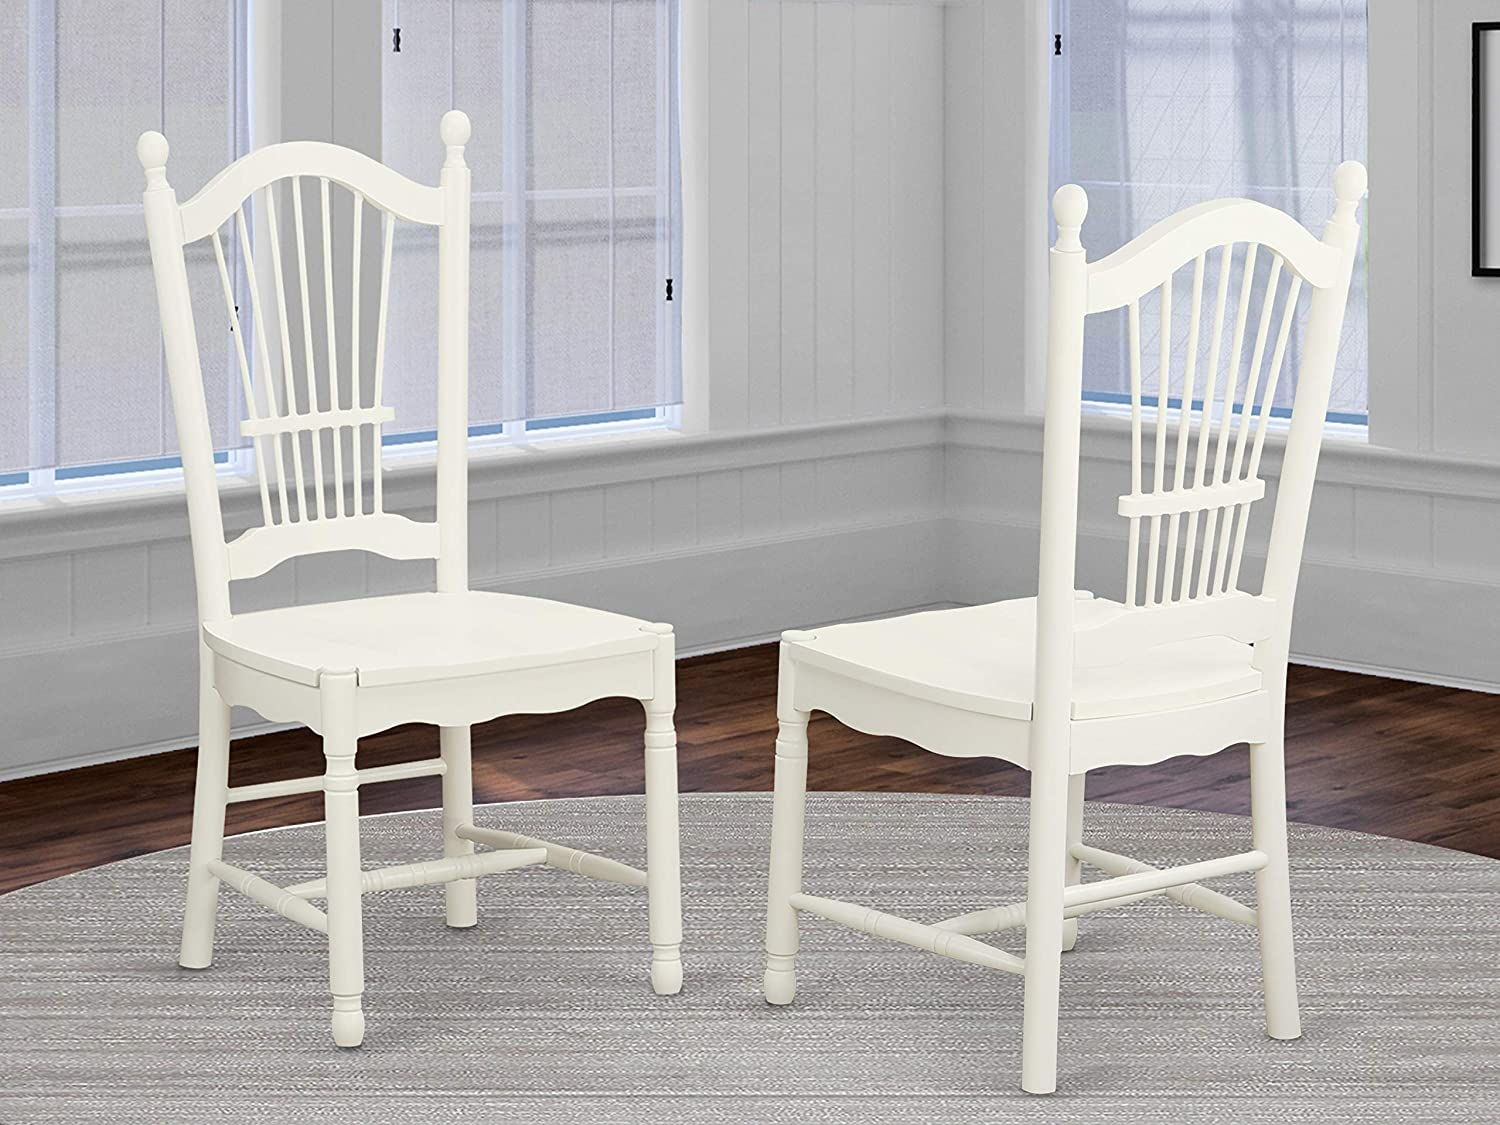 Dover Dining Room Chairs With Wood Seat – Finished in Linen White